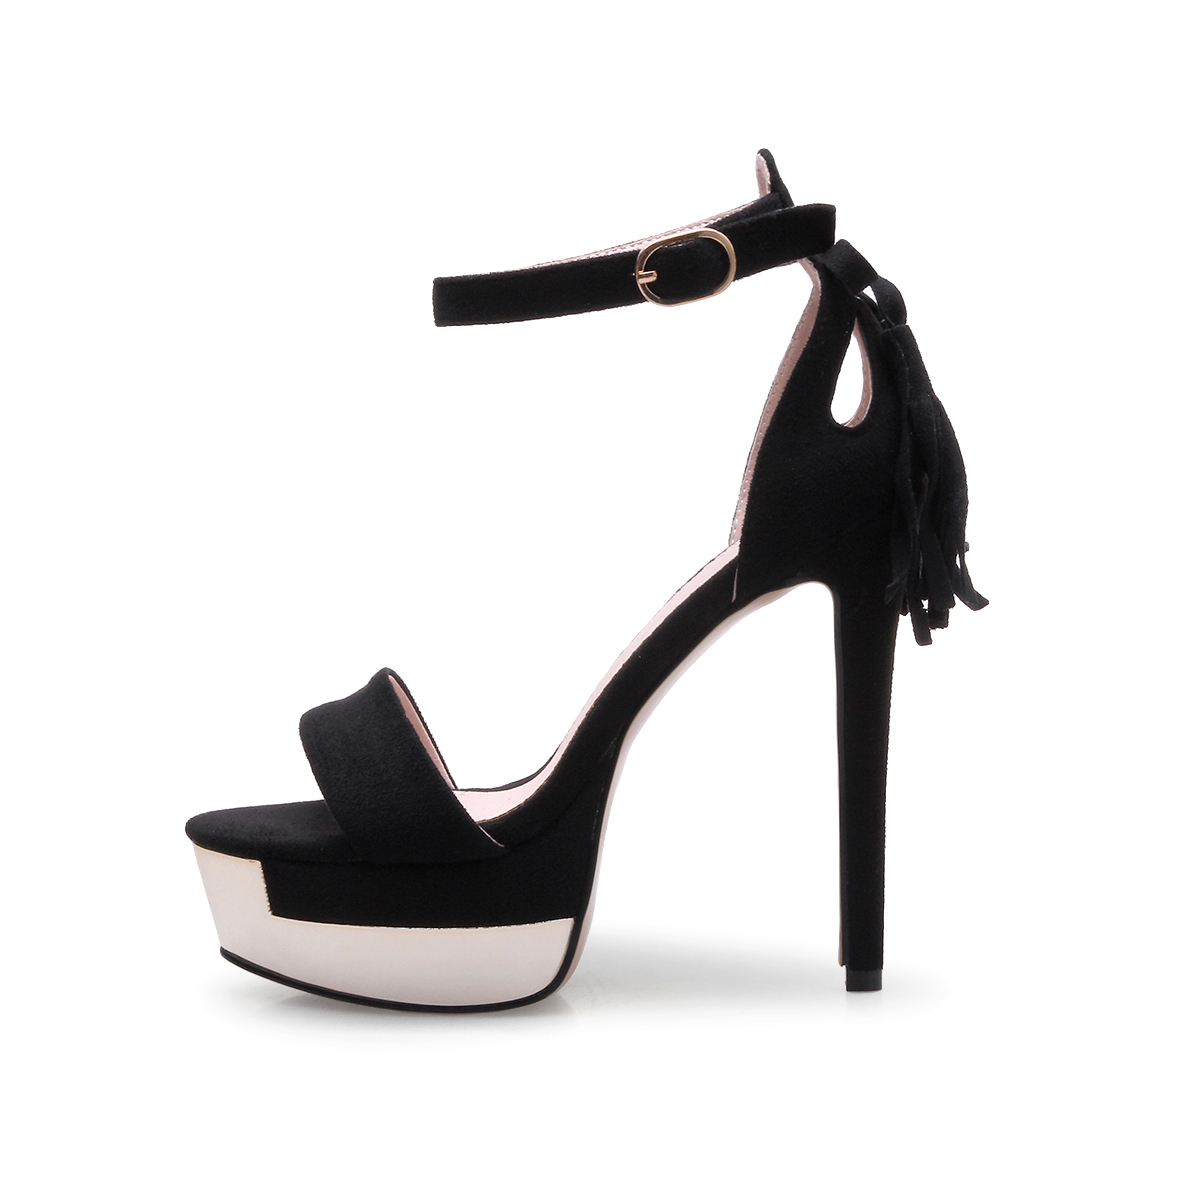 2018 summer high heels 12cm stilettos ankle strap stilettos fashion sandals party shoes for woman big size 40--45 outlet store for sale new sale for sale outlet best store to get discount 2014 dz3ryKa